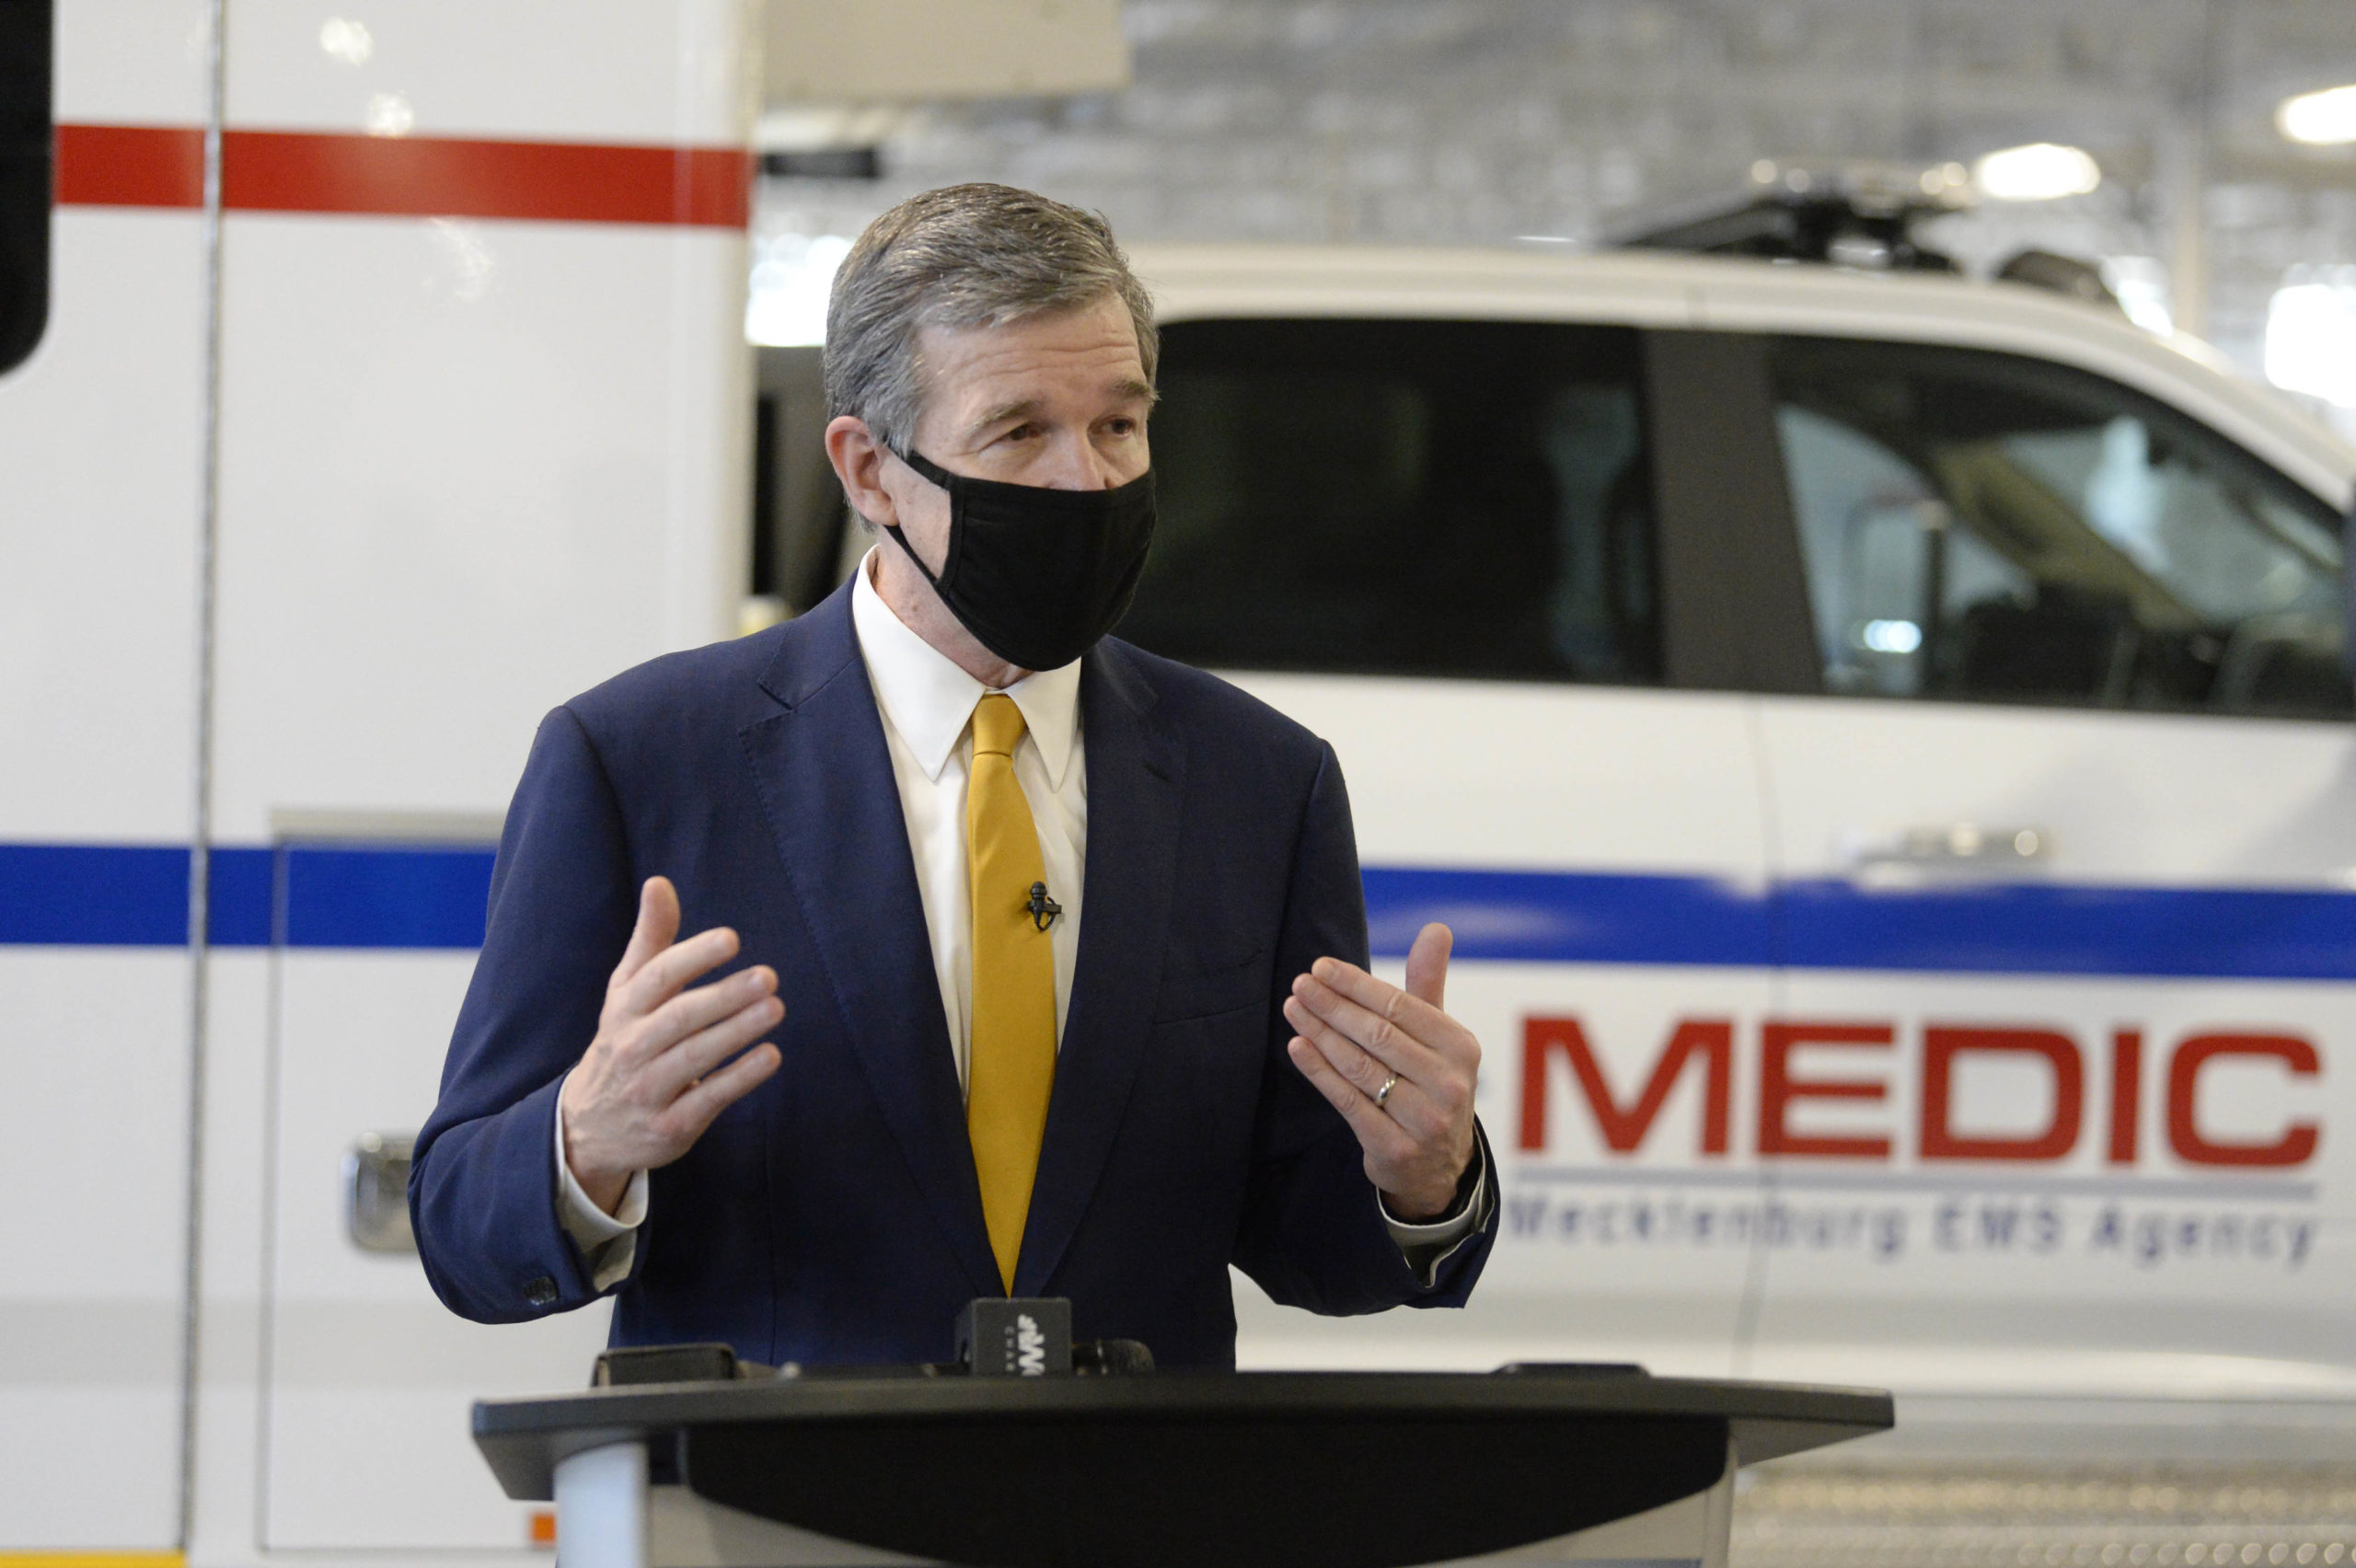 WBTV – NC Governor Cooper Tours Medic's Vaccination Clinic